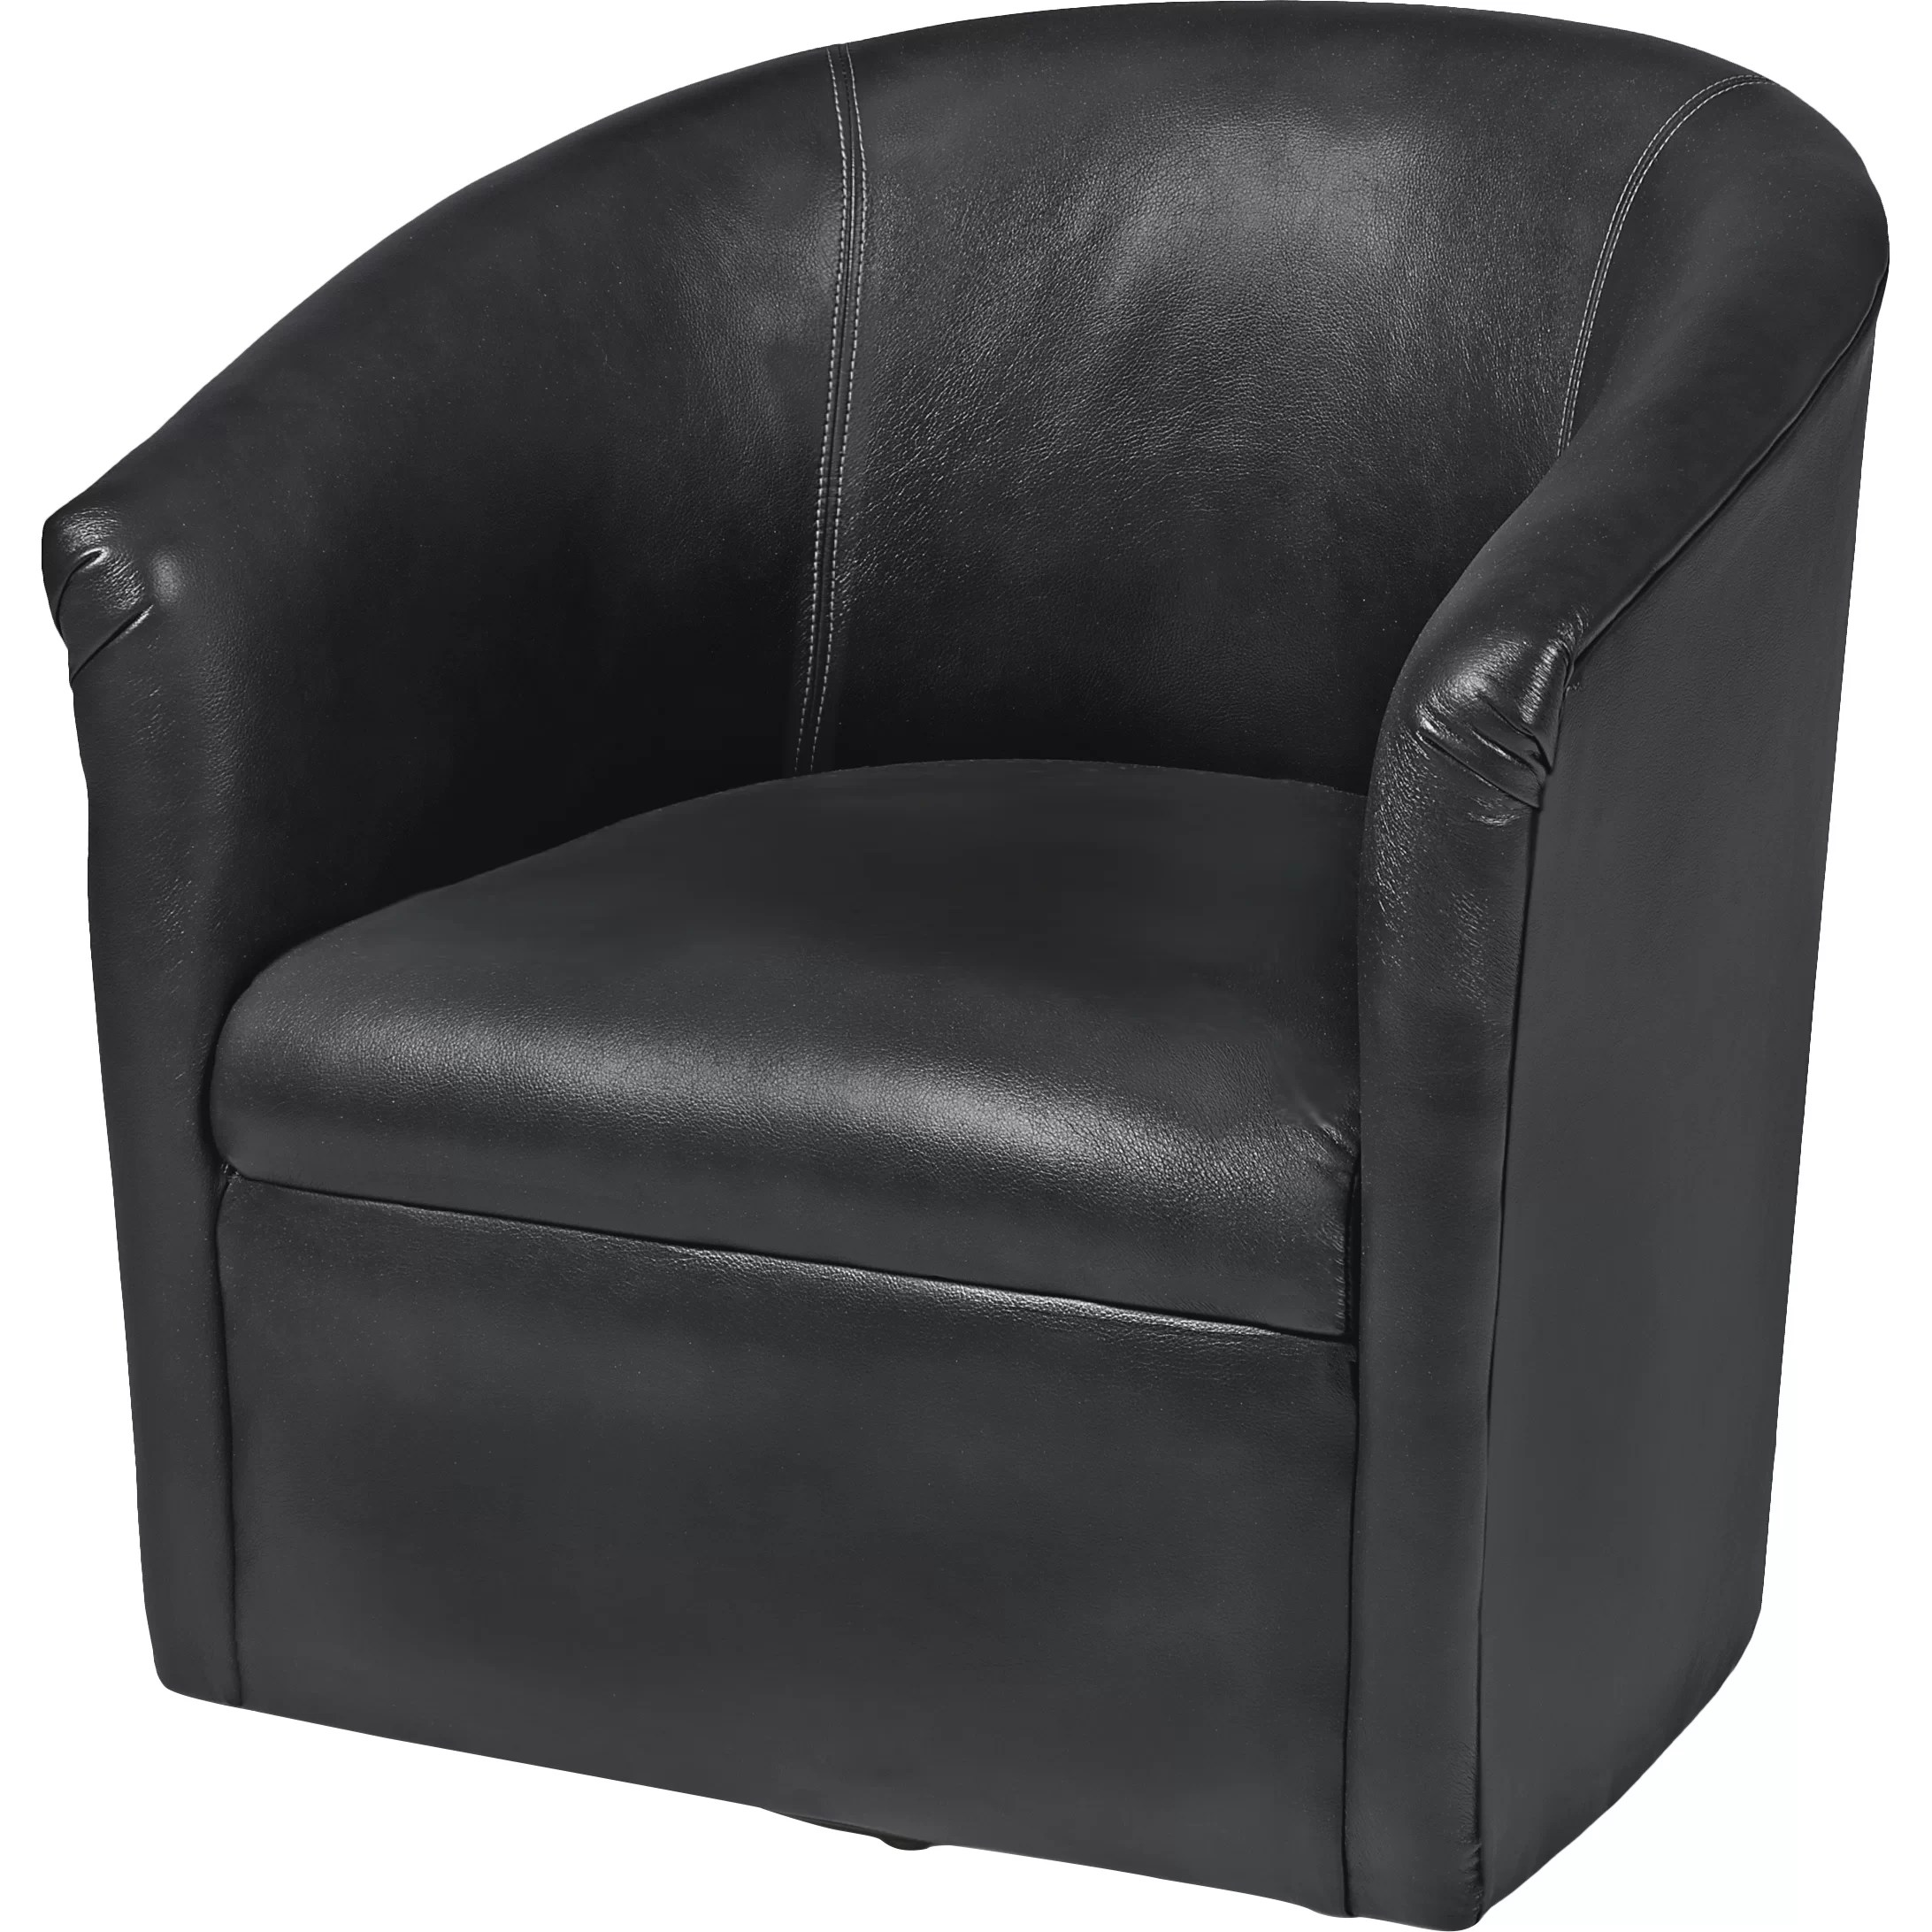 Barrel Chair Swivel Comfort Pointe Draper Swivel Barrel Chair And Reviews Wayfair